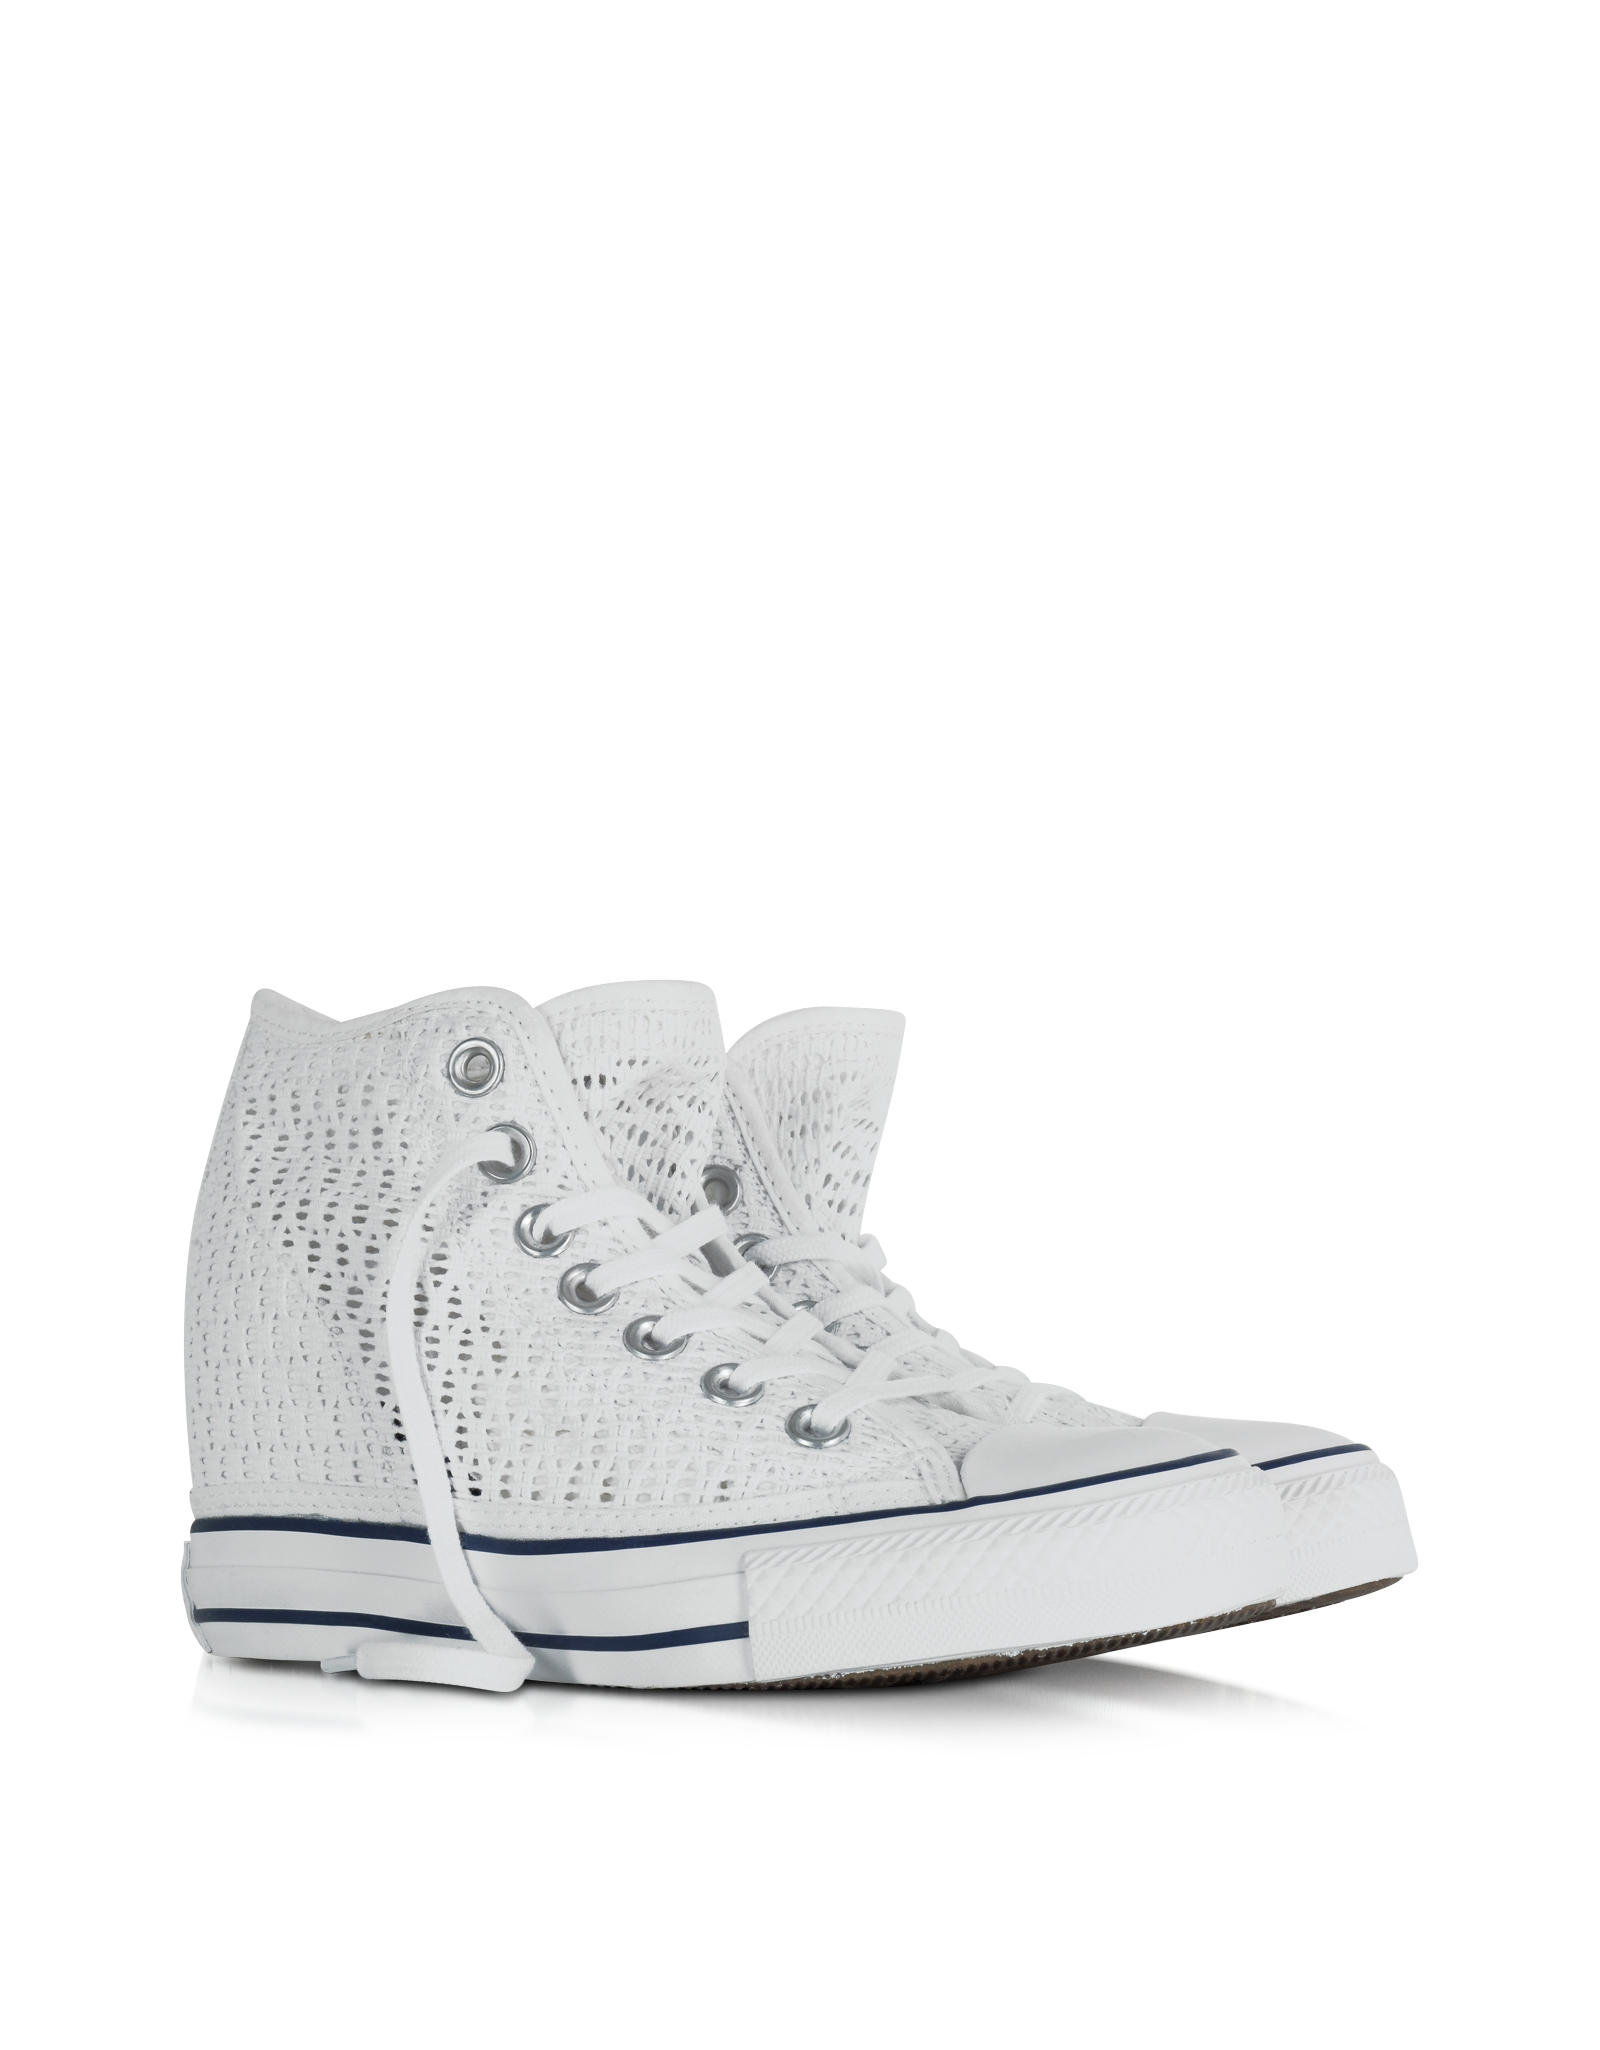 converse all star mid lux canvas